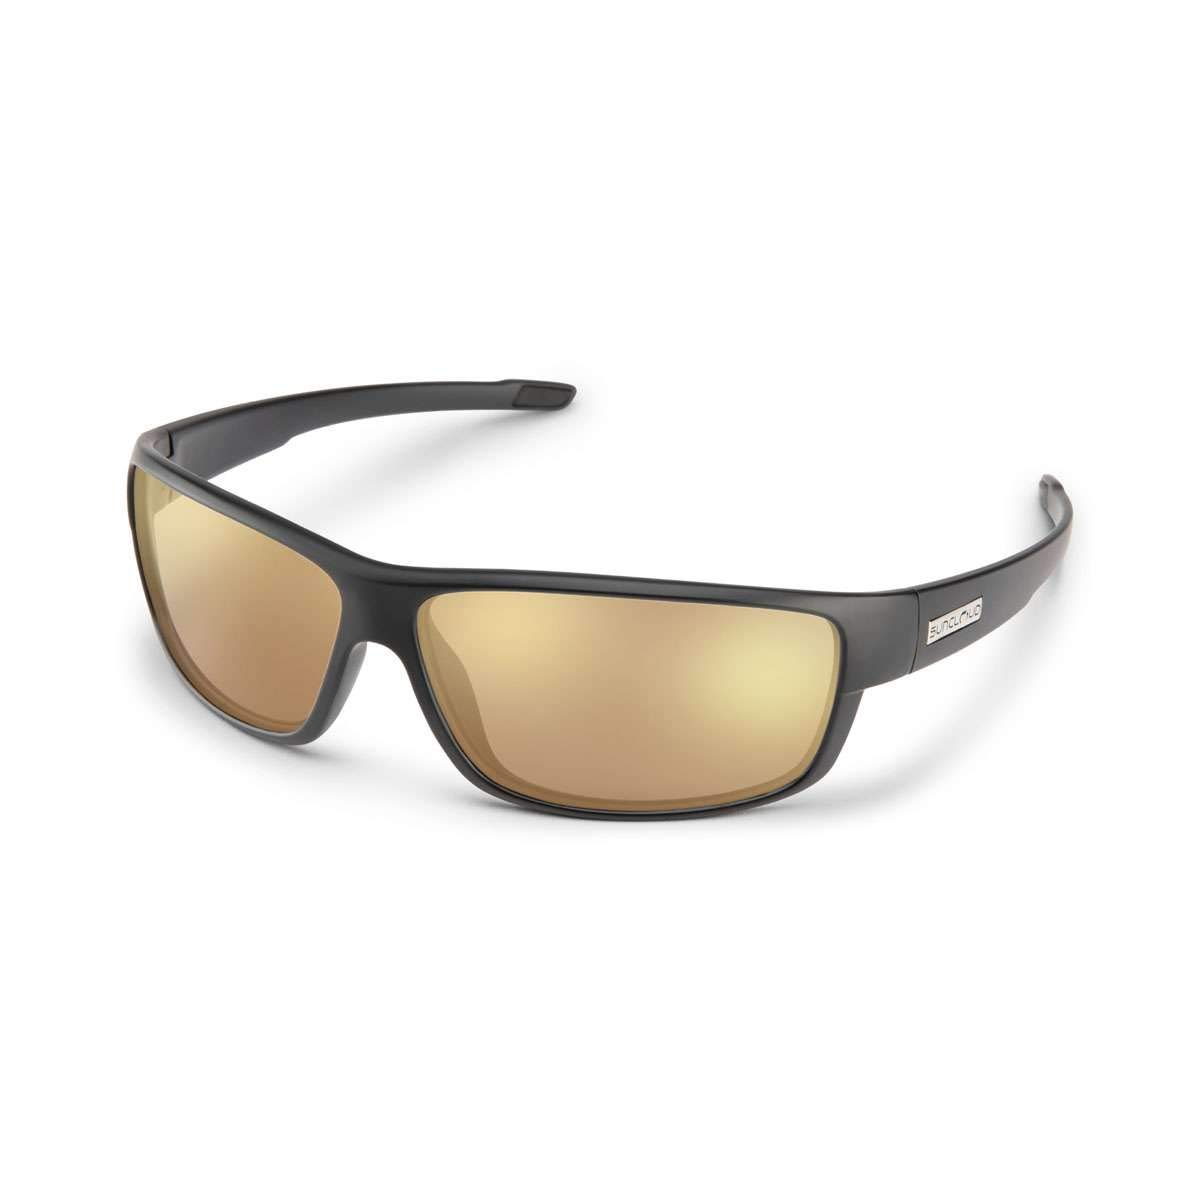 2994356f98 Suncloud voucher polarized sunglasses in matte black with sienna mirror  lenses sports outdoors jpg 1200x1200 Suncloud